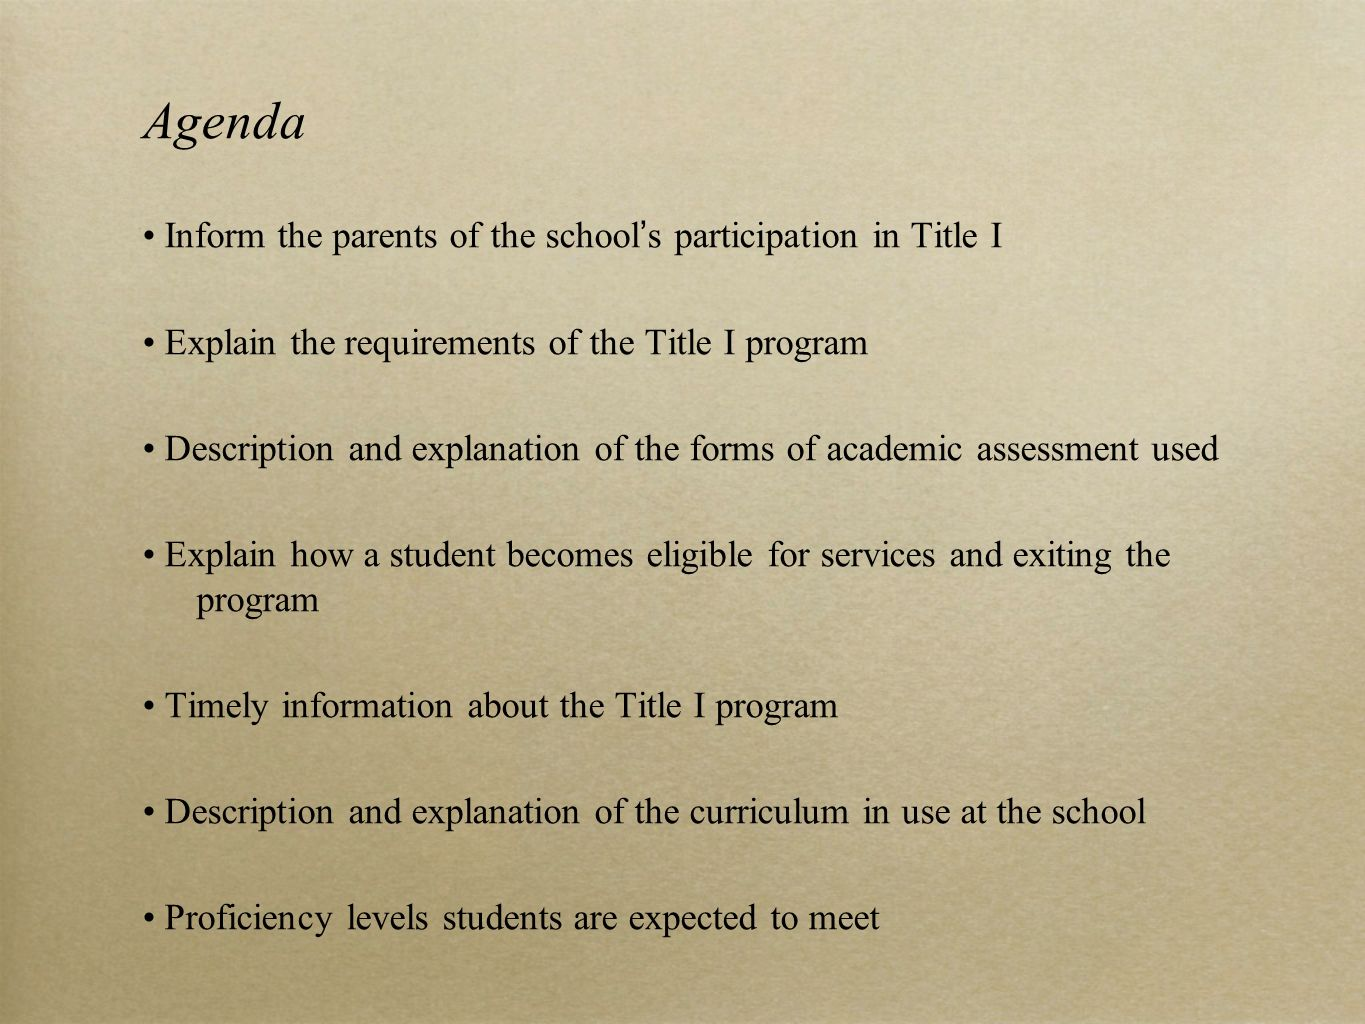 Agenda Inform the parents of the school's participation in Title I Explain the requirements of the Title I program Description and explanation of the forms of academic assessment used Explain how a student becomes eligible for services and exiting the program Timely information about the Title I program Description and explanation of the curriculum in use at the school Proficiency levels students are expected to meet